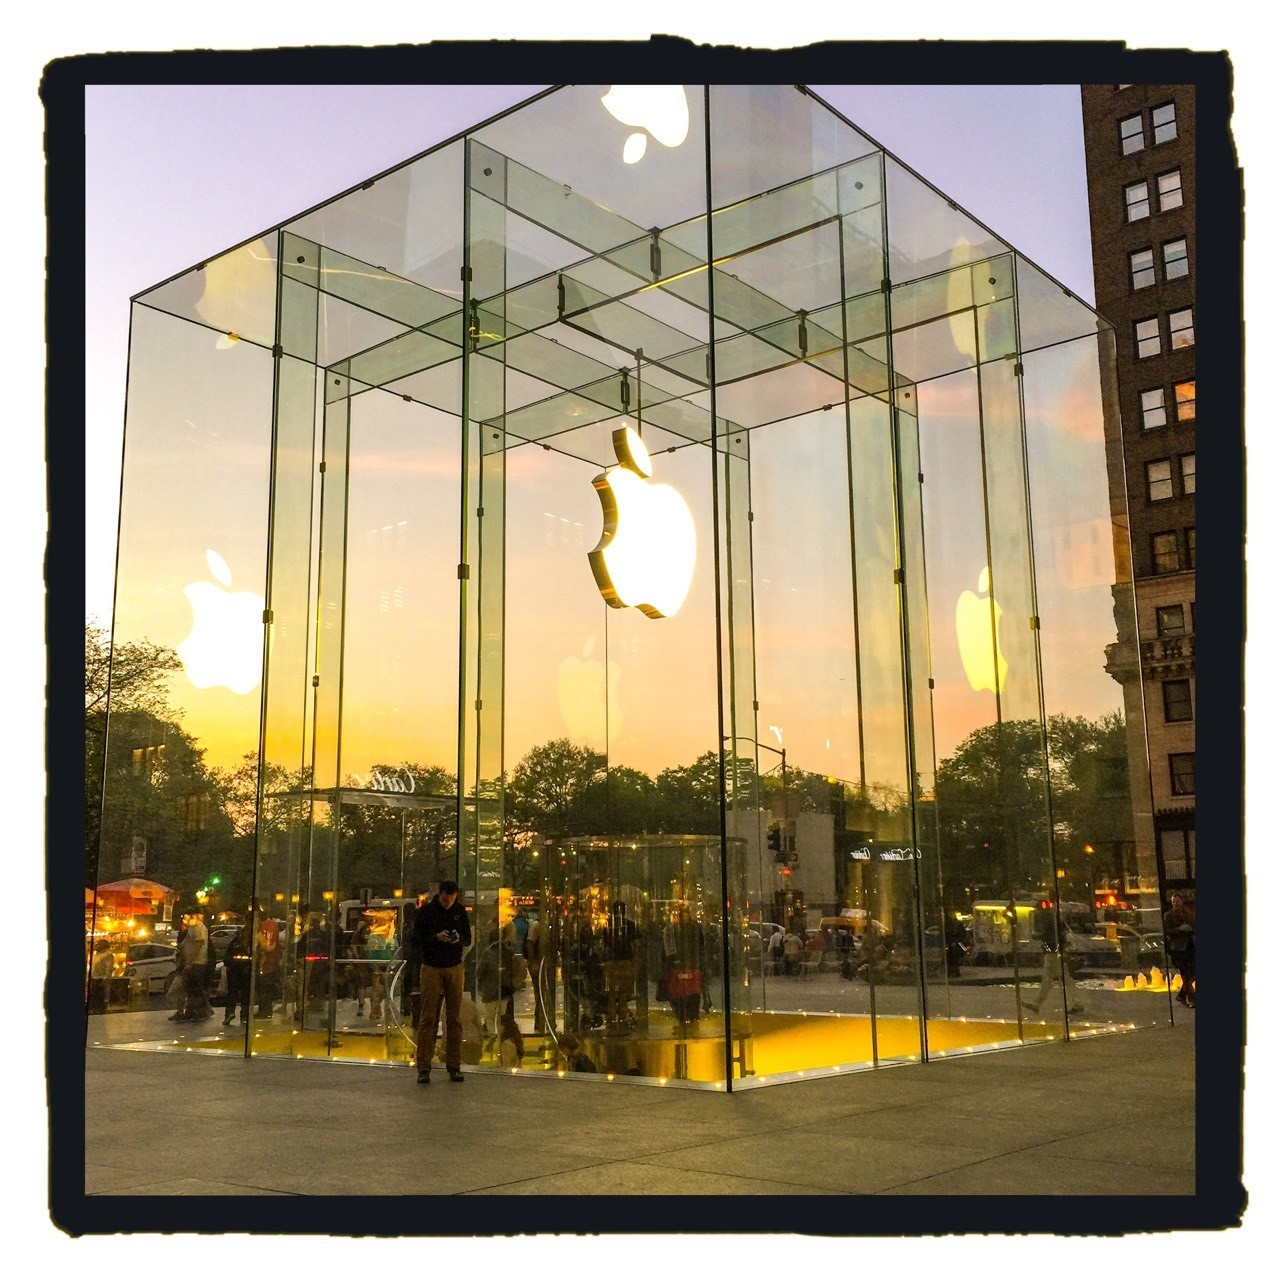 Apple 5th ave, NYC